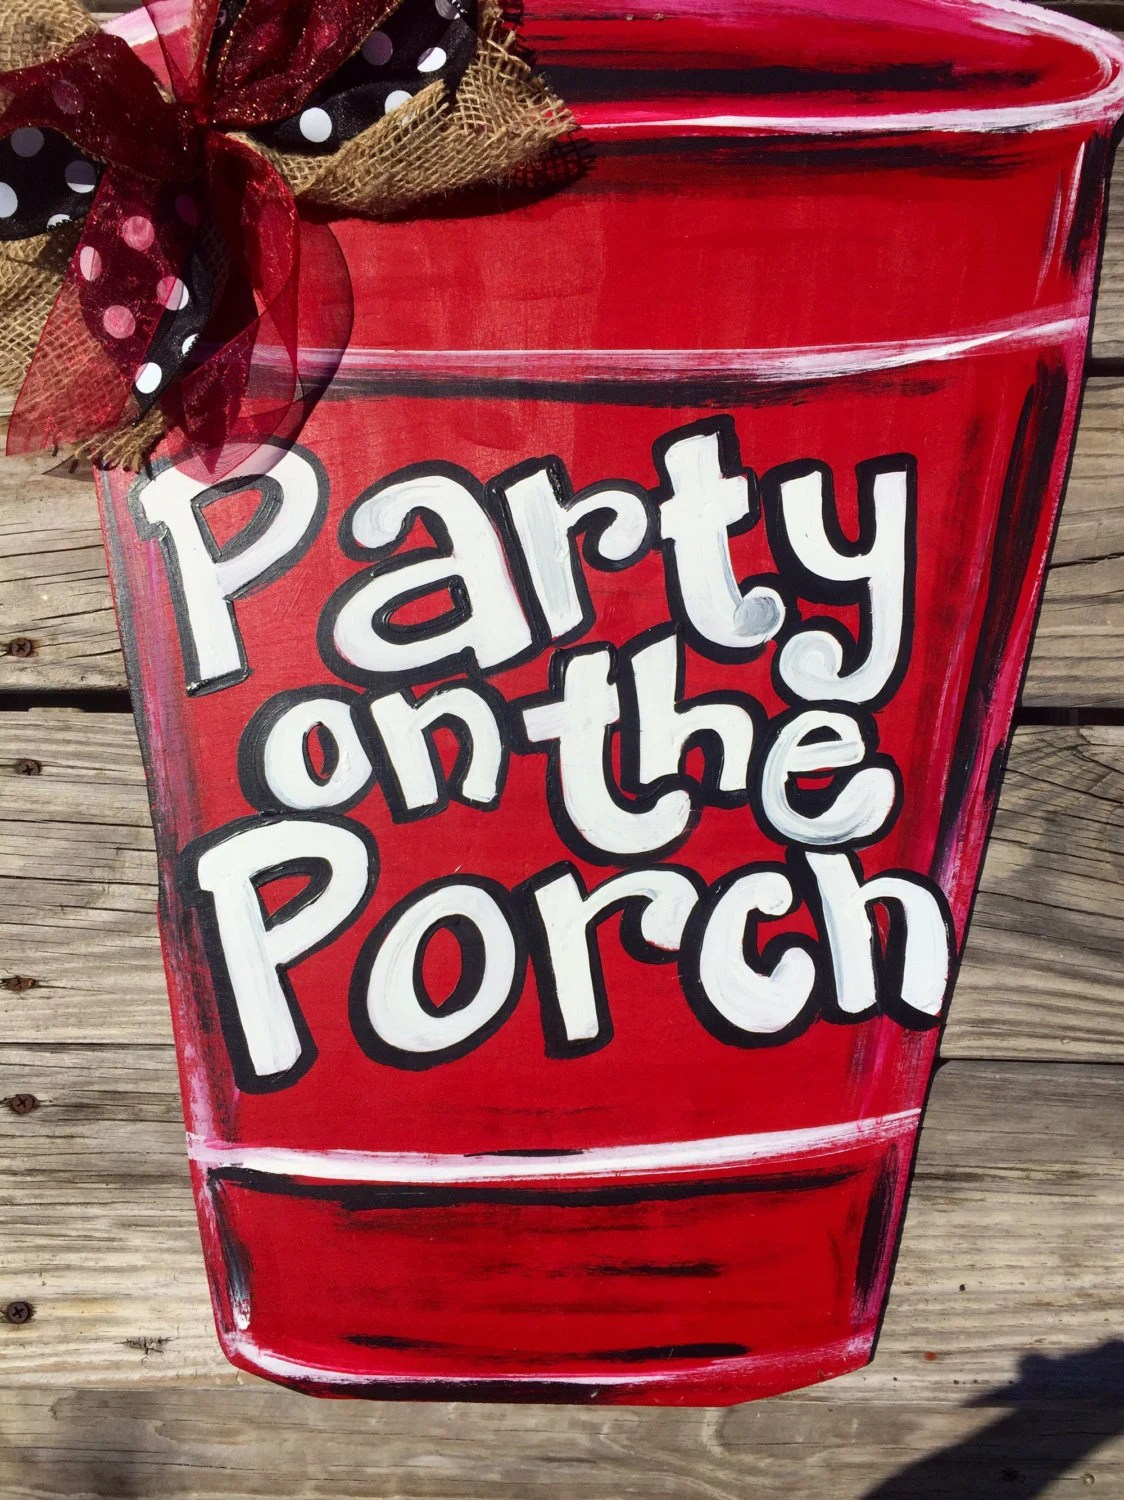 Red Solo Cup door hanger by PaintingBoutiquellc on Etsy